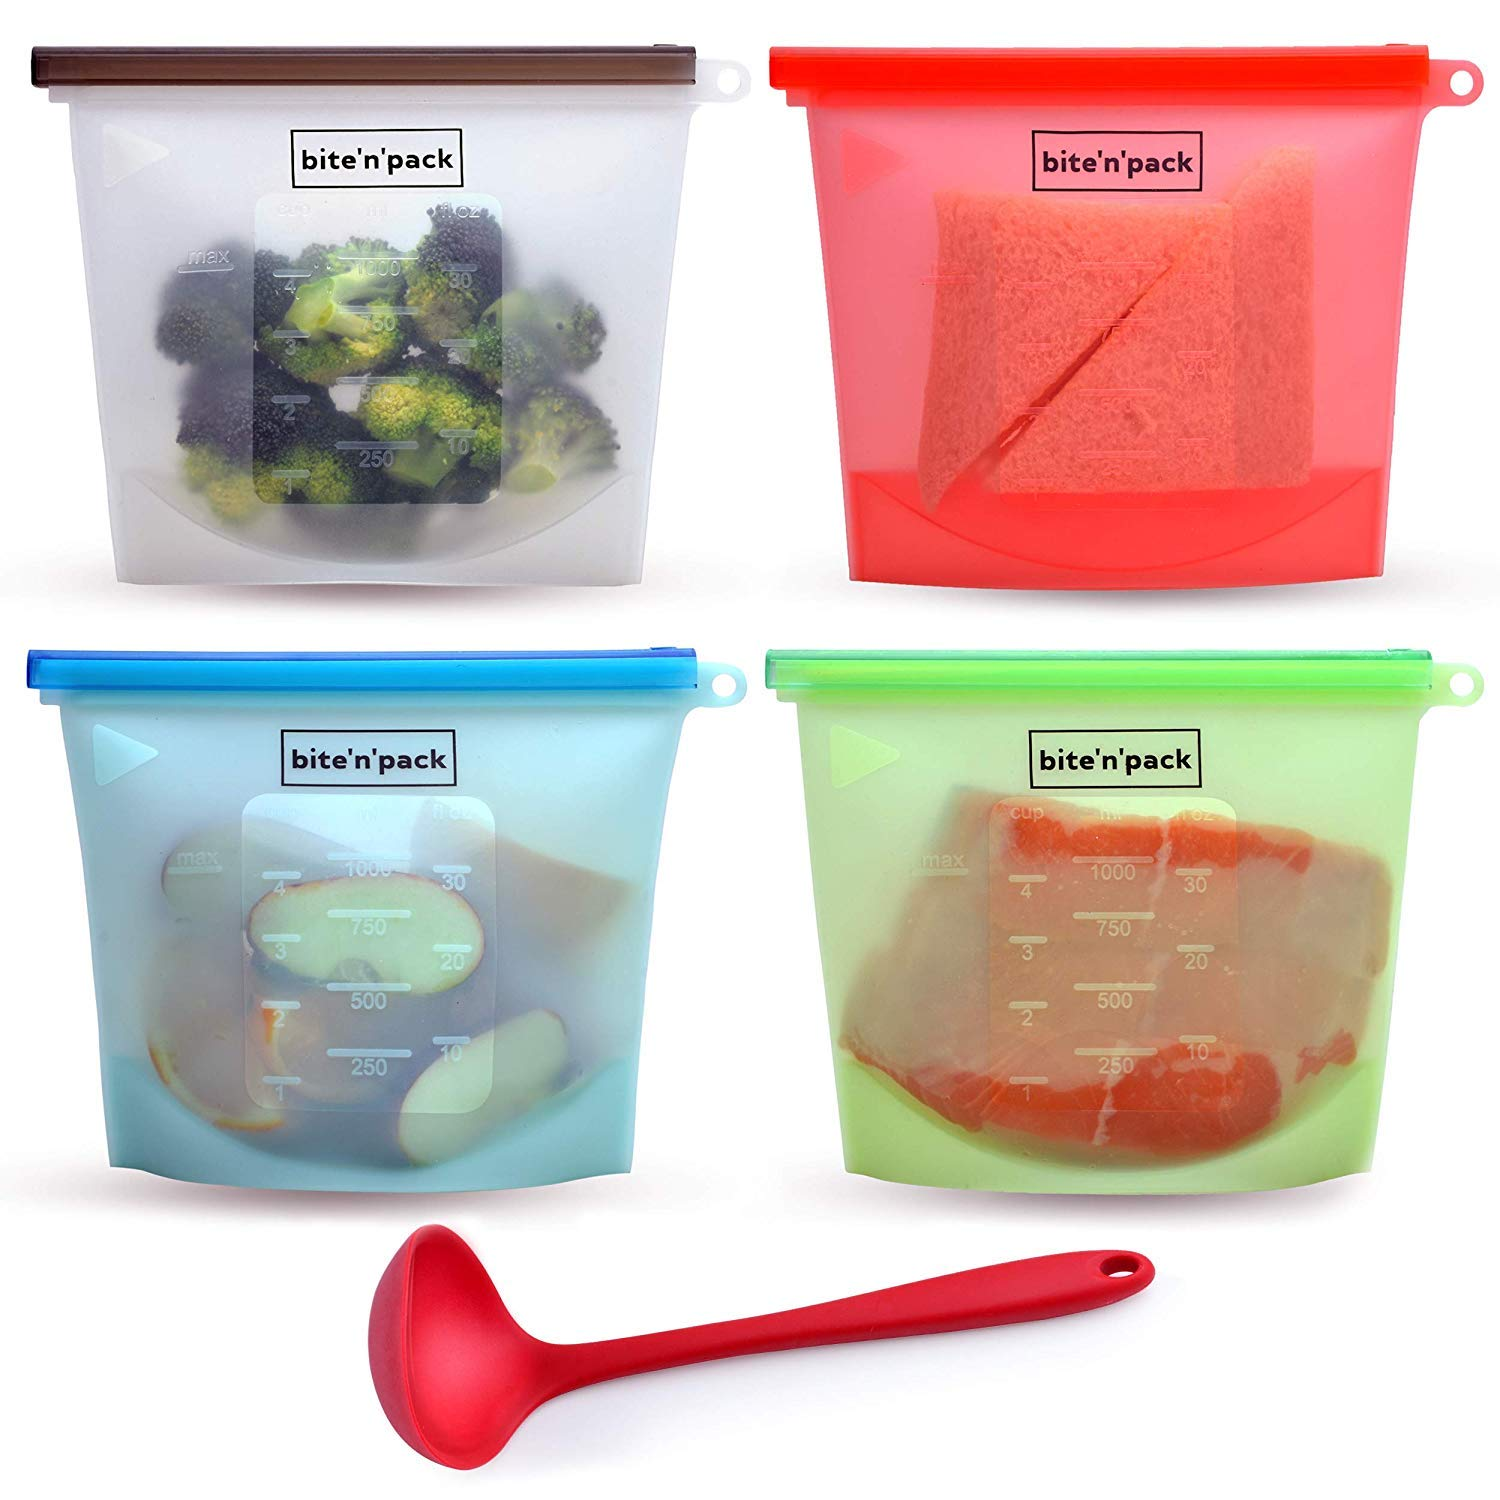 Reusable Silicone Food Storage Bag Set of 4 + 1 BONUS LADLE to Store/Freeze/Heat/Sous Vide Food and Drinks, Leakproof, Microwave Freezer Dishwasher Safe, Reusable Sandwich Bags